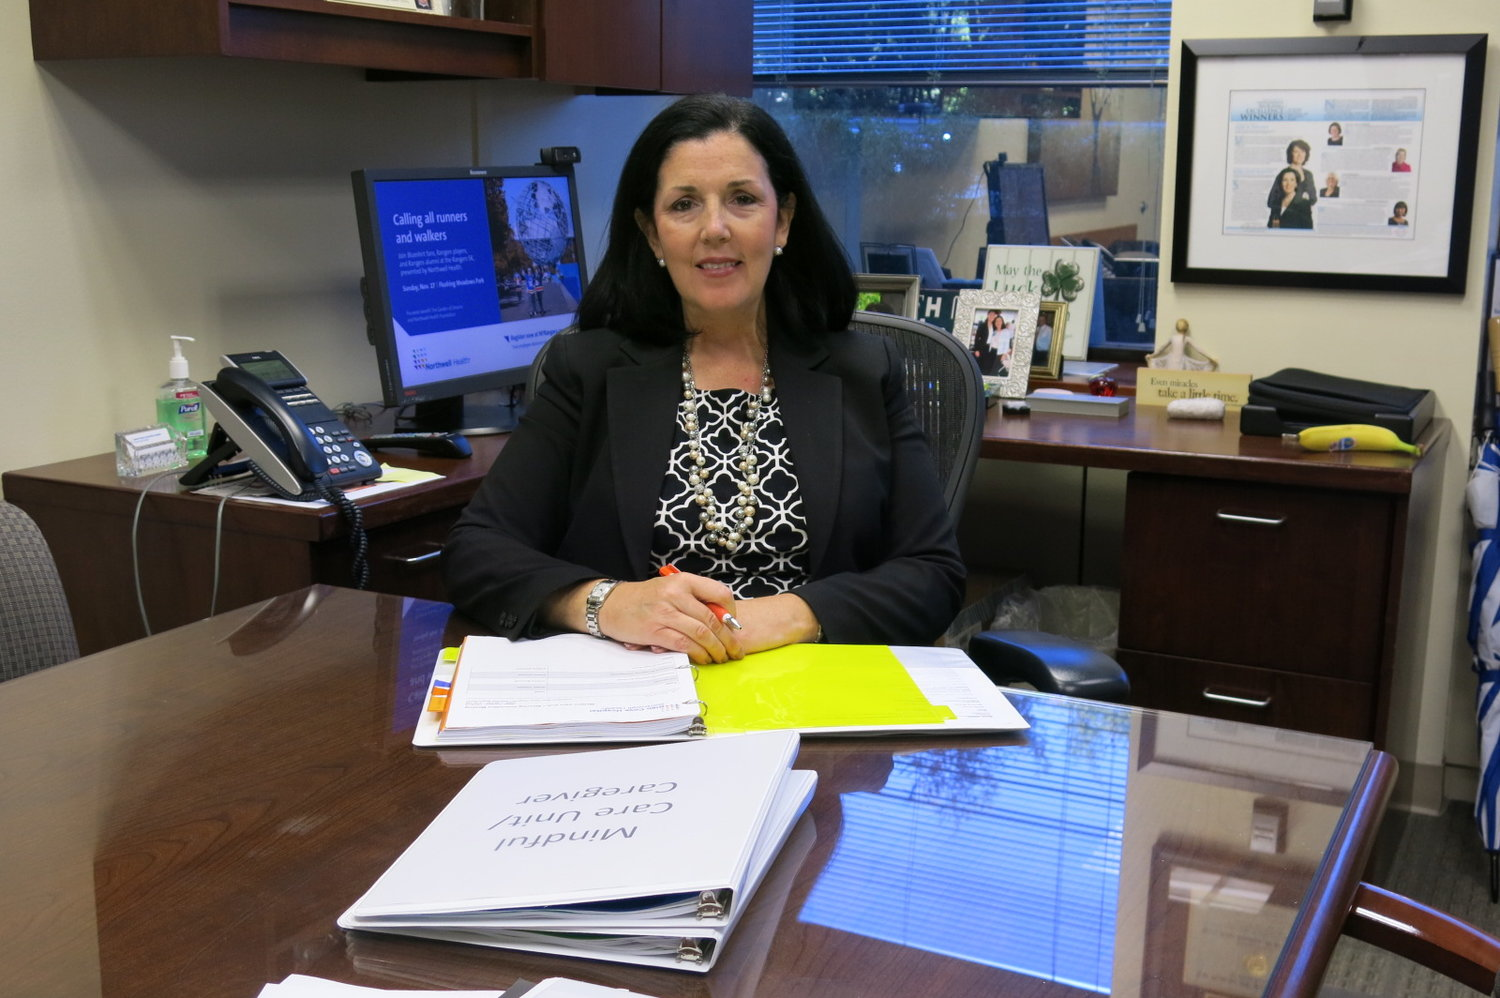 Kerri Anne Scanlon, Glen Cove Hospital's new executive director, will start work on Nov. 4.